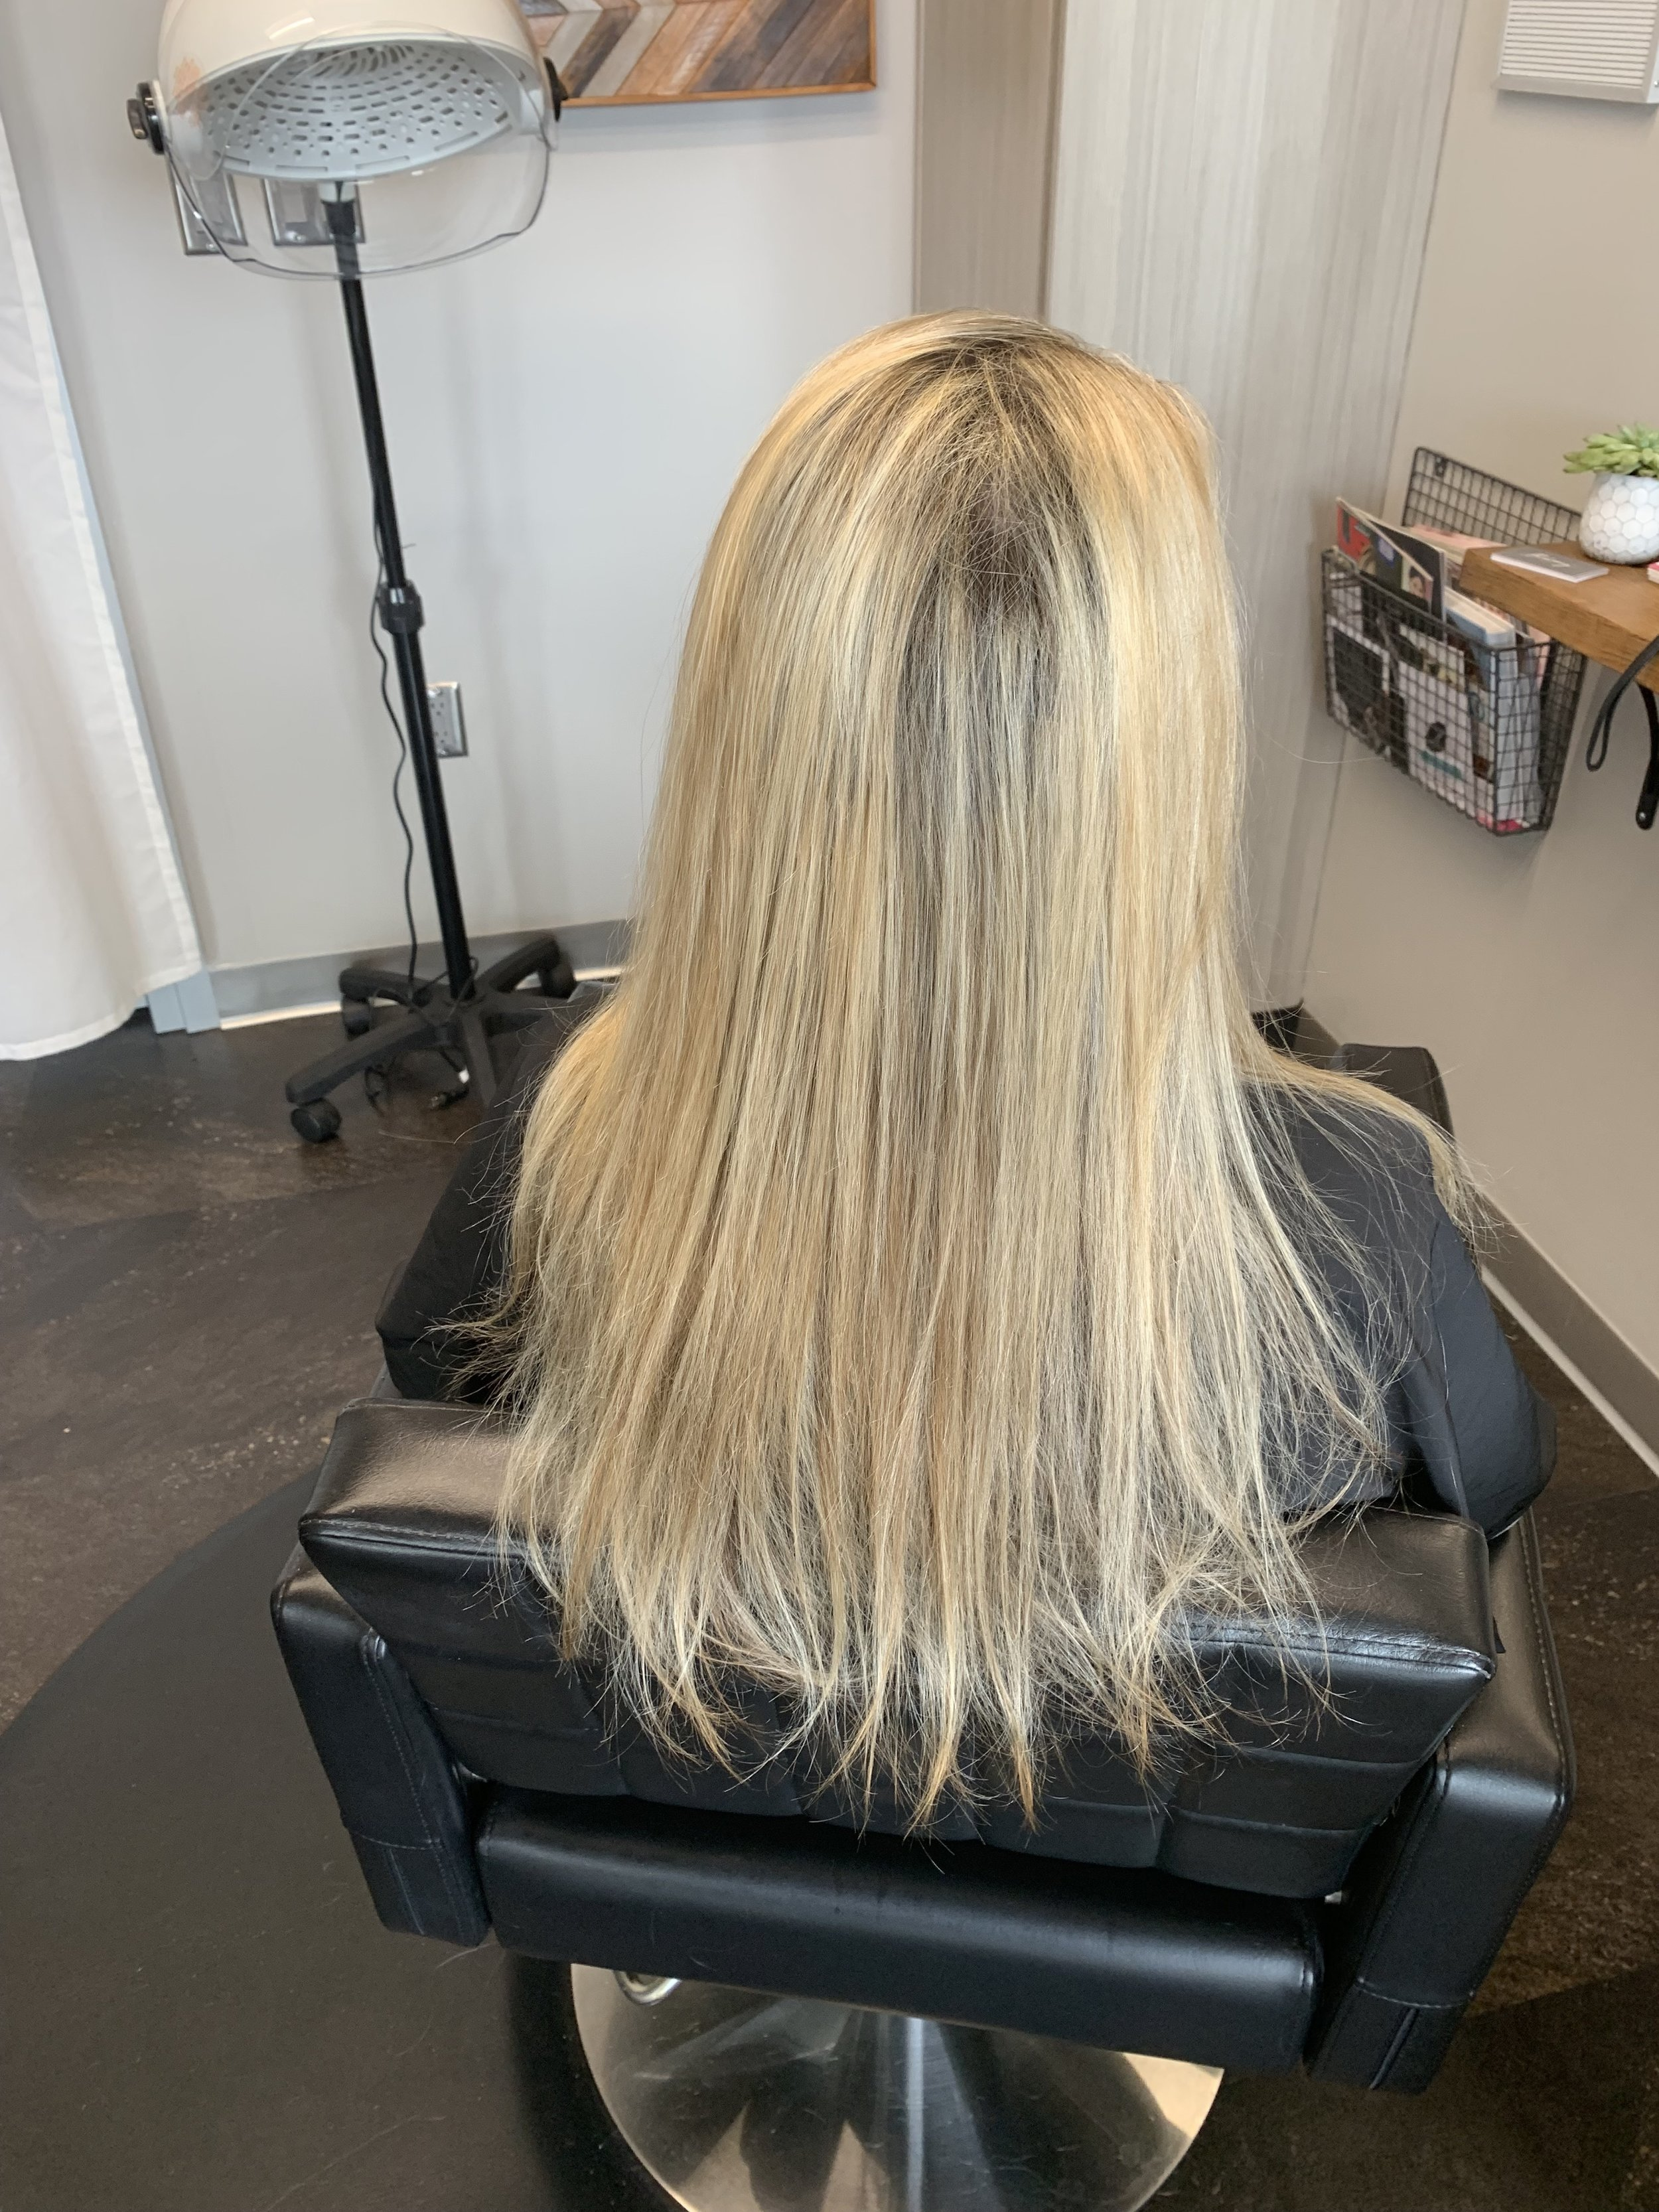 Beaded row hair extensions bohemy salon lake mary florida 6.jpg